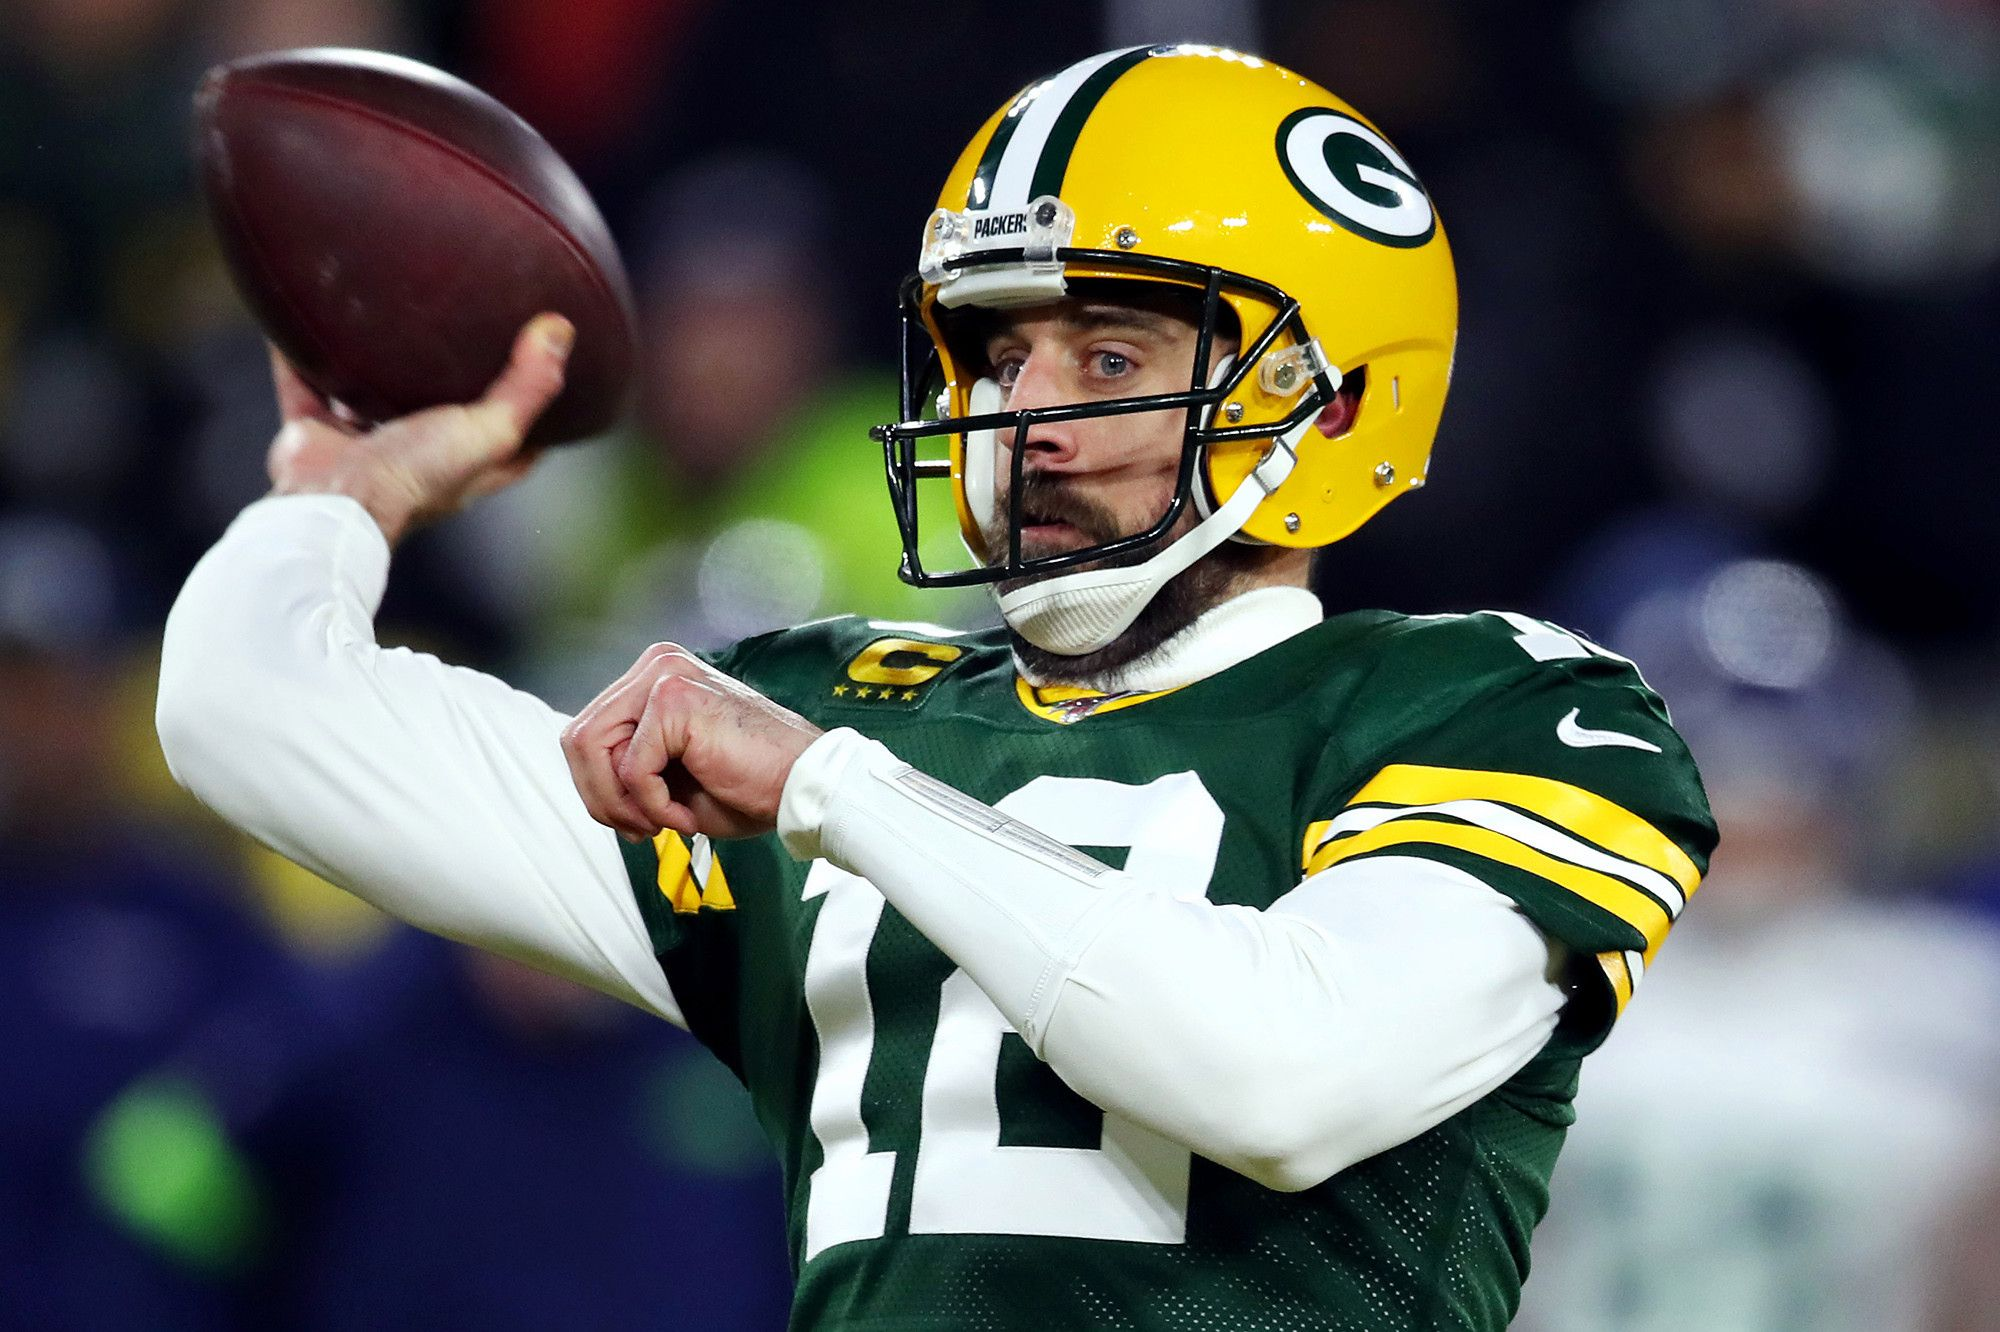 Aaron Rodgers Has Chance To Make 49ers Pay For All Of It National Football League News In 2020 Nfl News National Football Football League